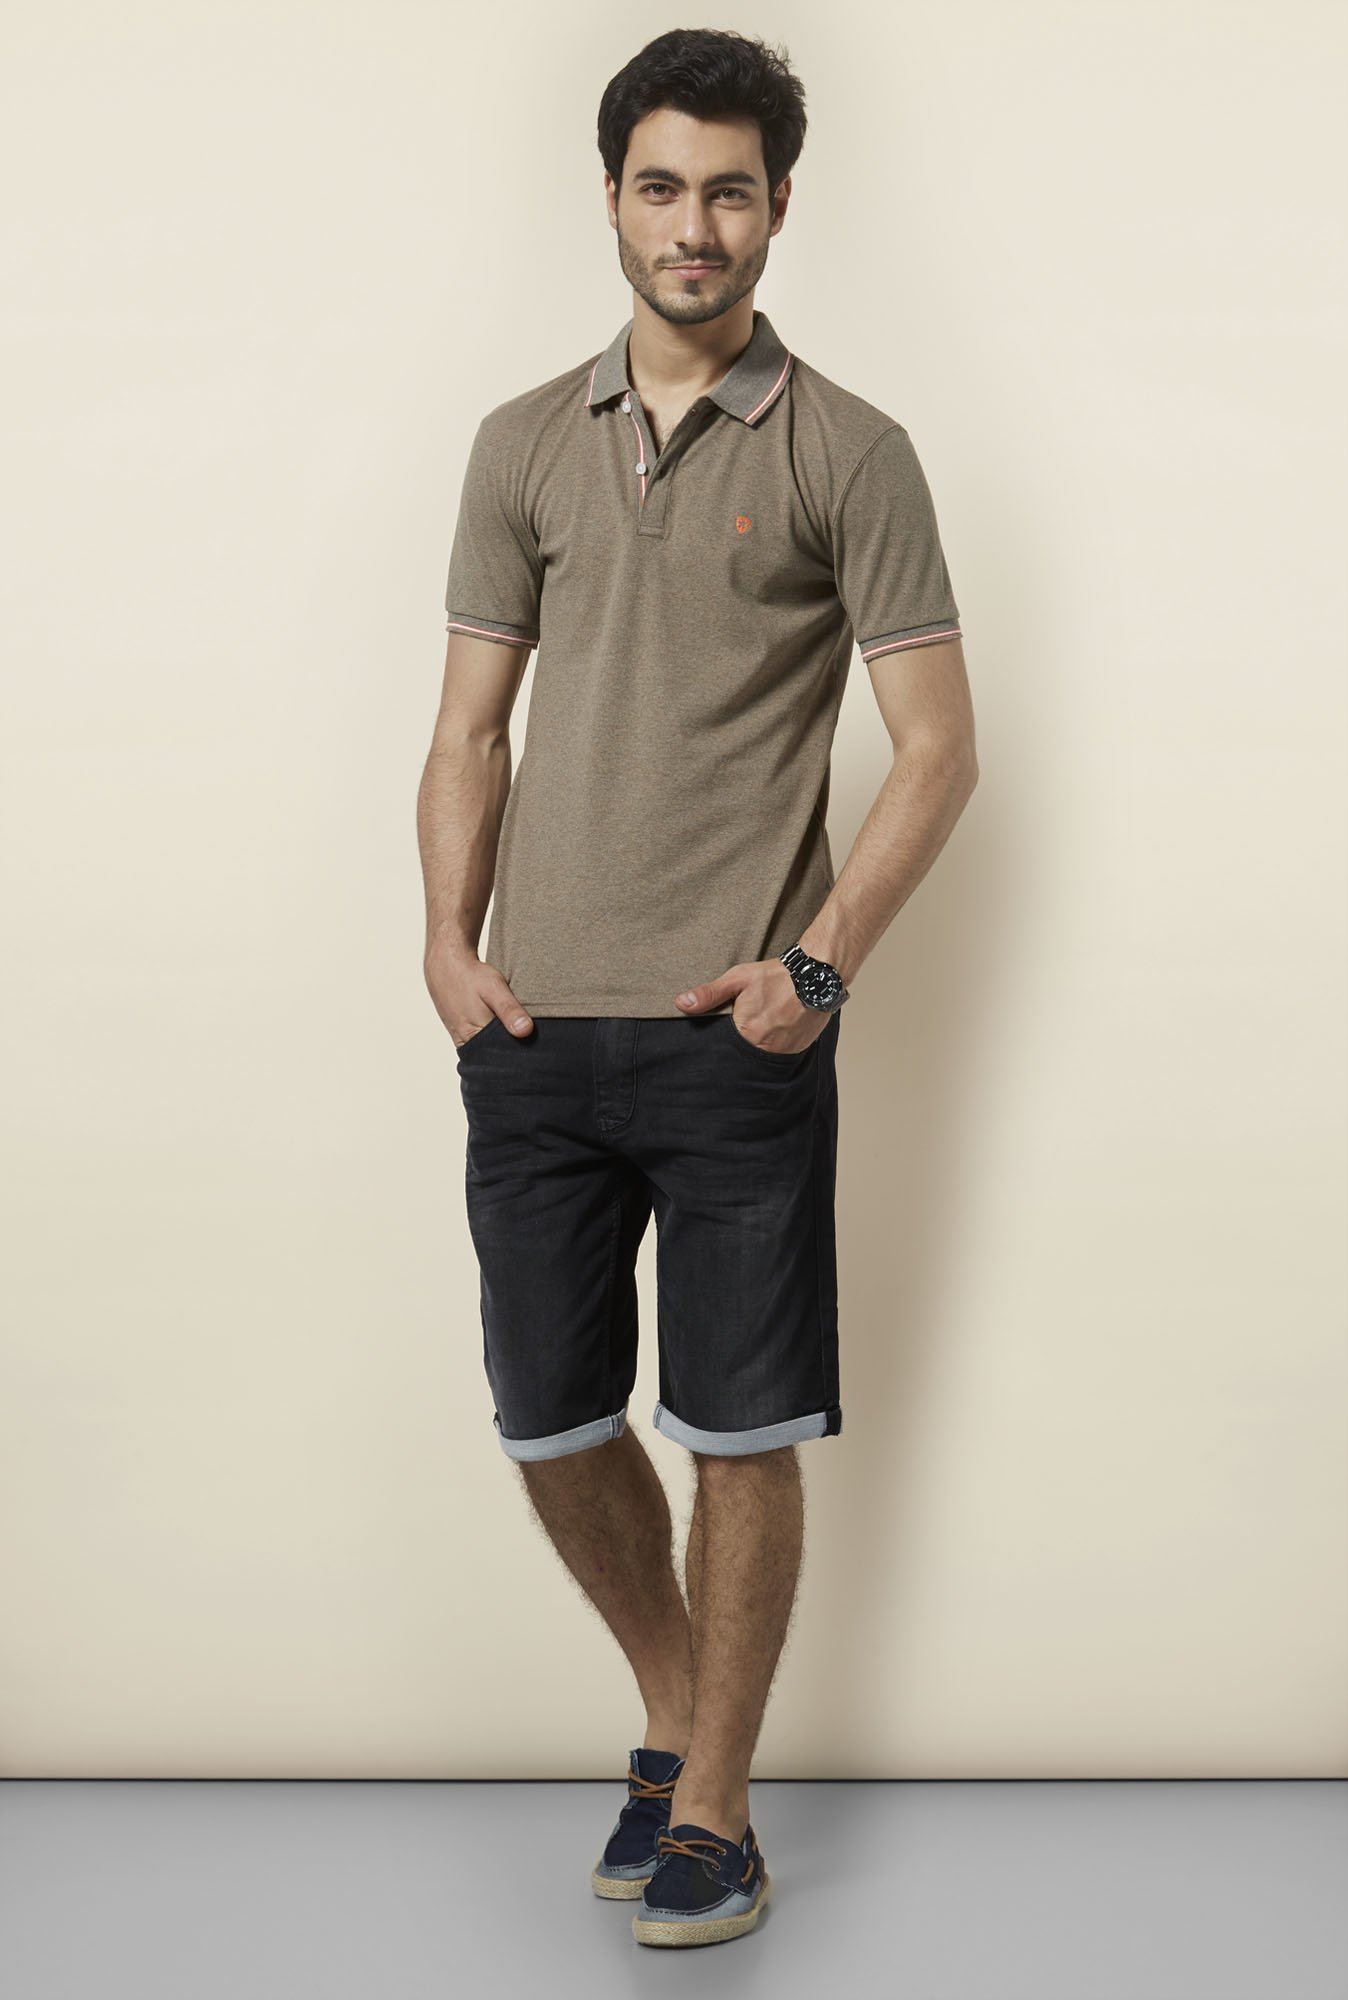 celio* Brown Solid Polo T-Shirt